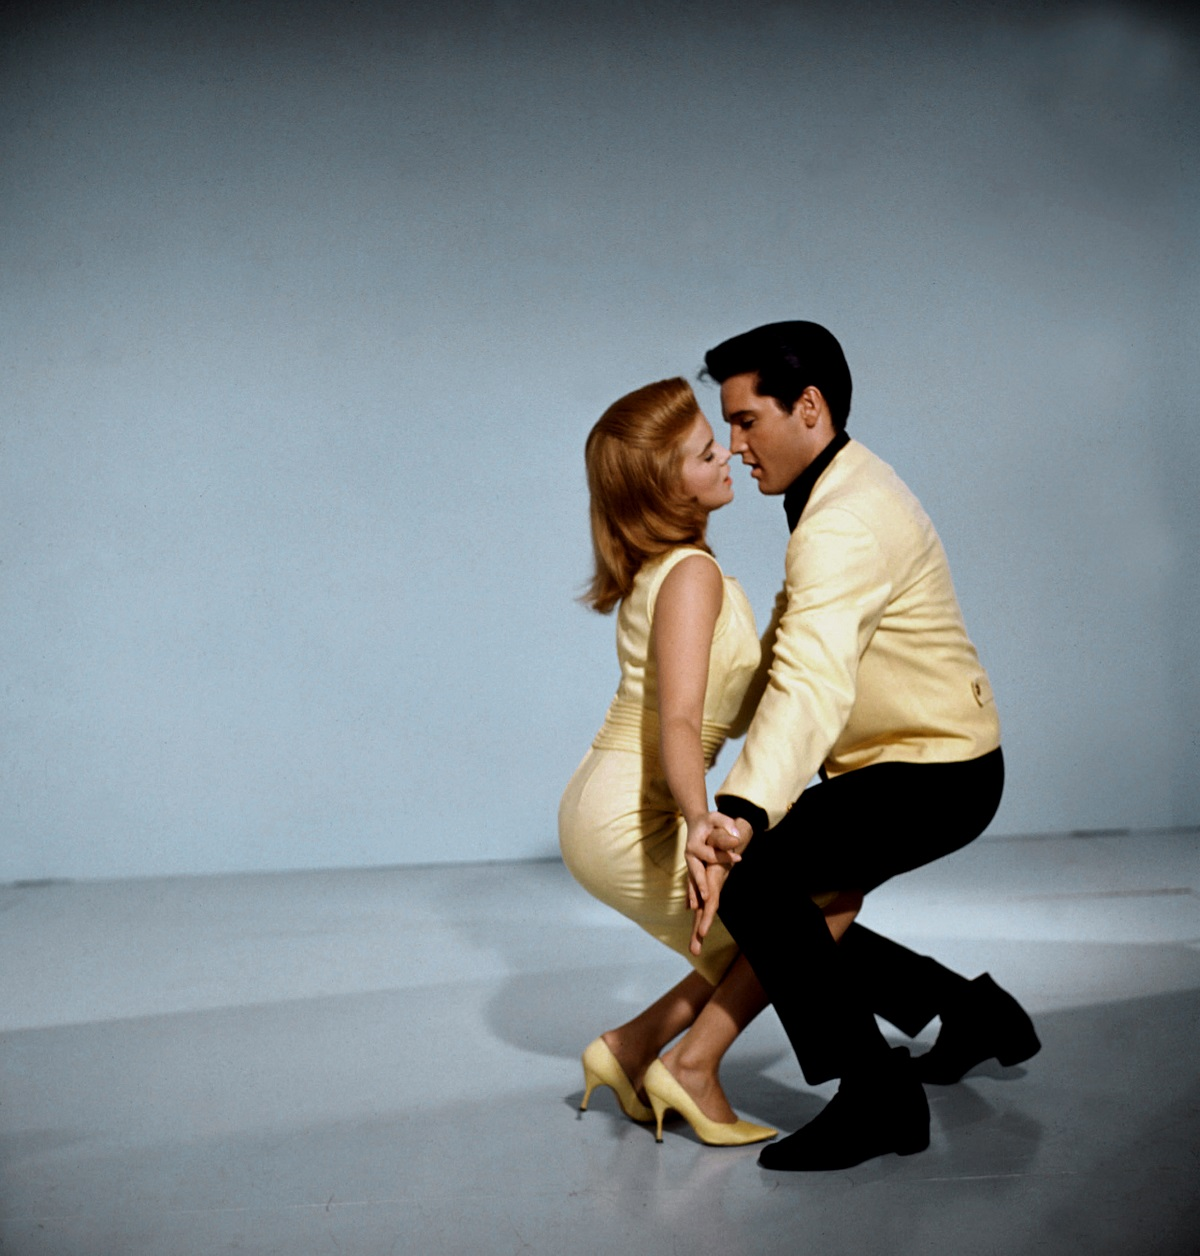 Ann-Margret and American singer, actor and icon Elvis Presley promoting the movie Viva Las Vegas, directed and produced by George Sidney. They are dancing in a promotional still.